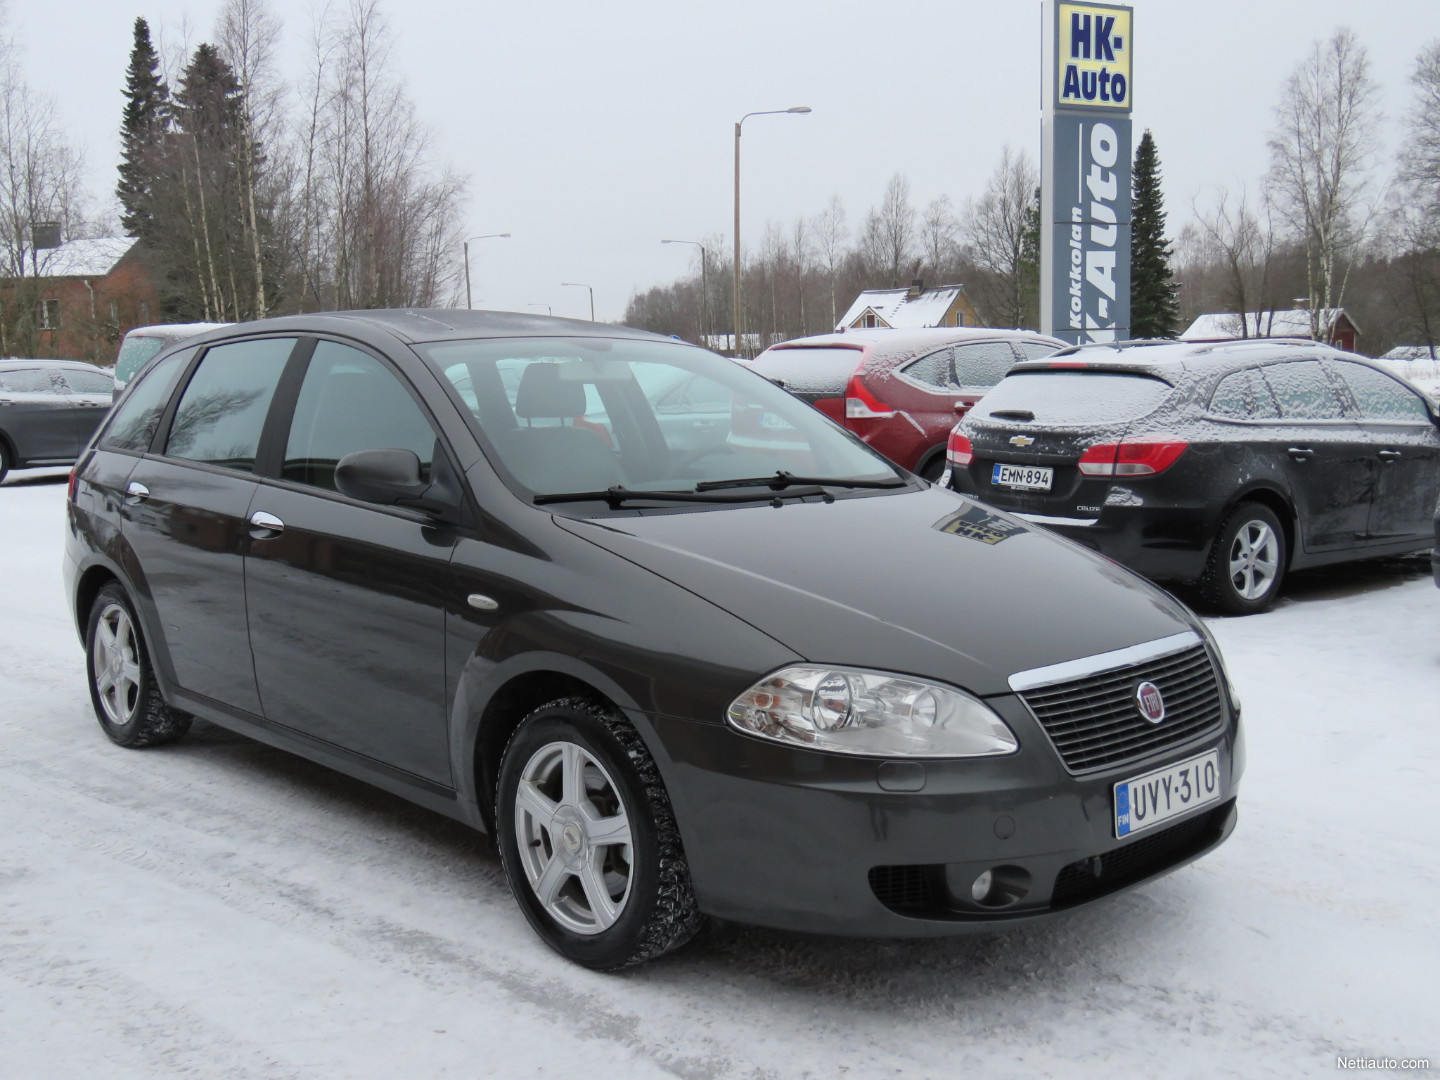 Enlarge image. Fiat Croma